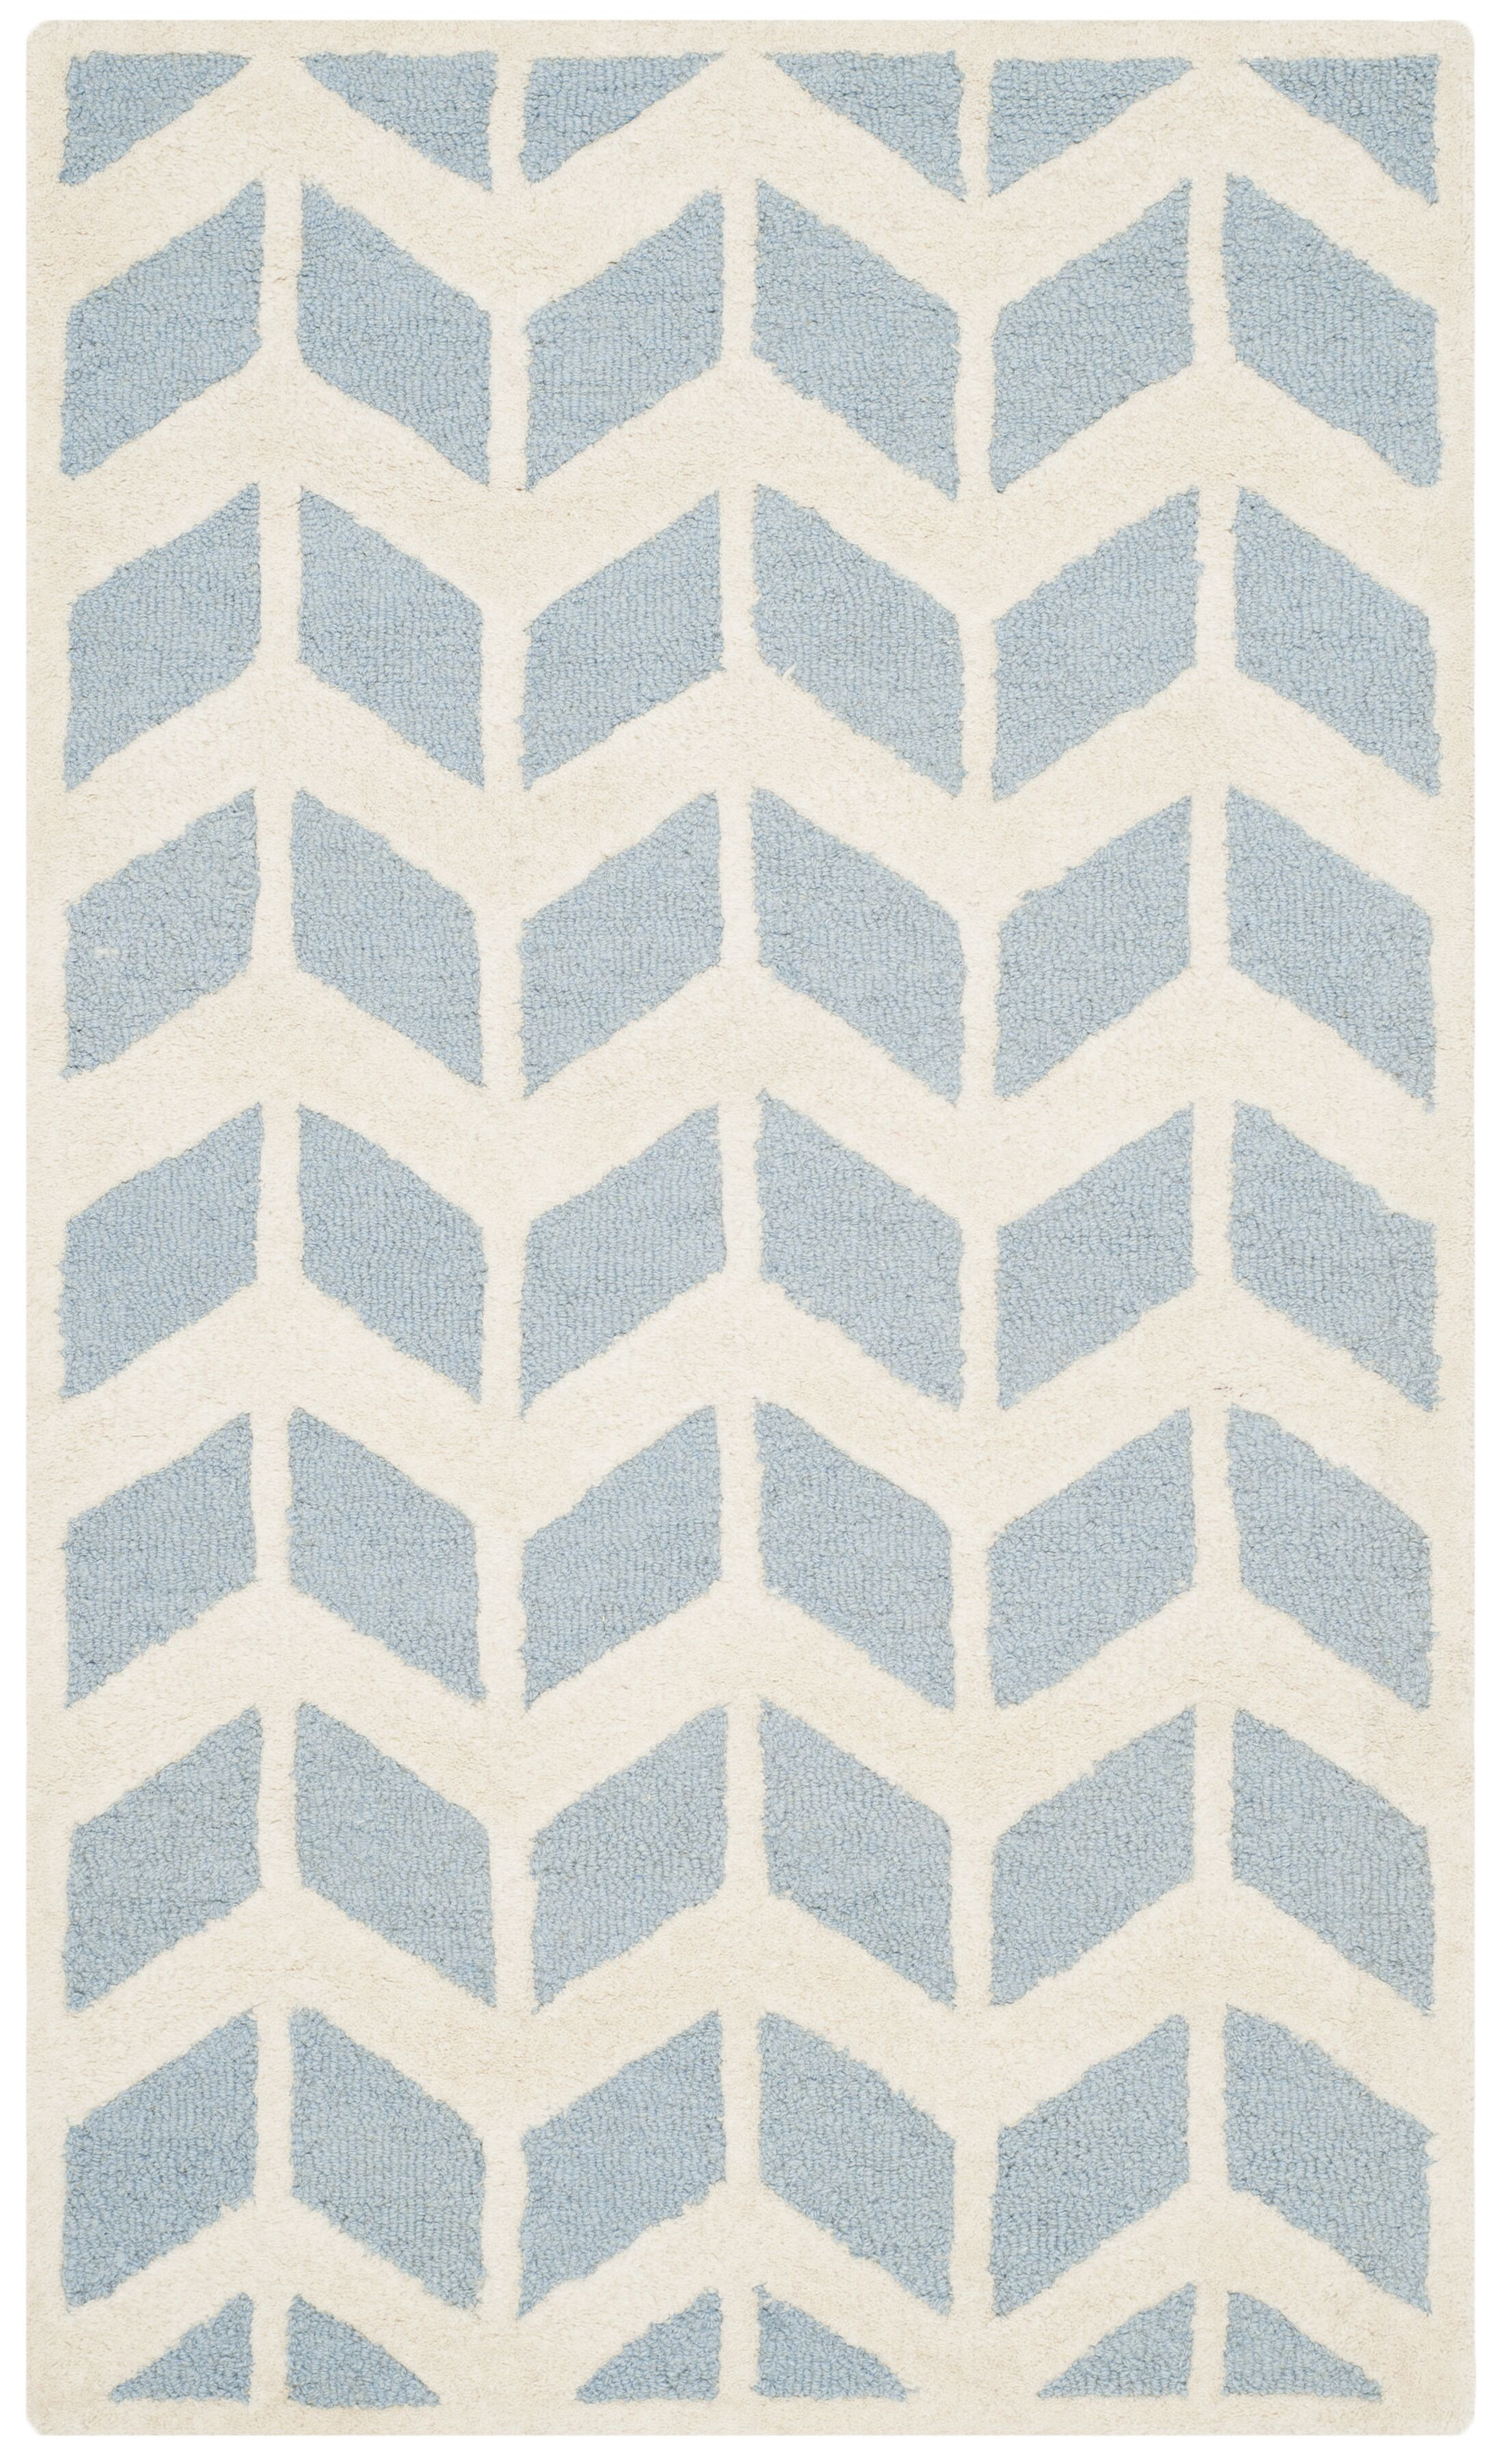 Martins Blue/Ivory Area Rug Rug Size: Rectangle 8' x 10'